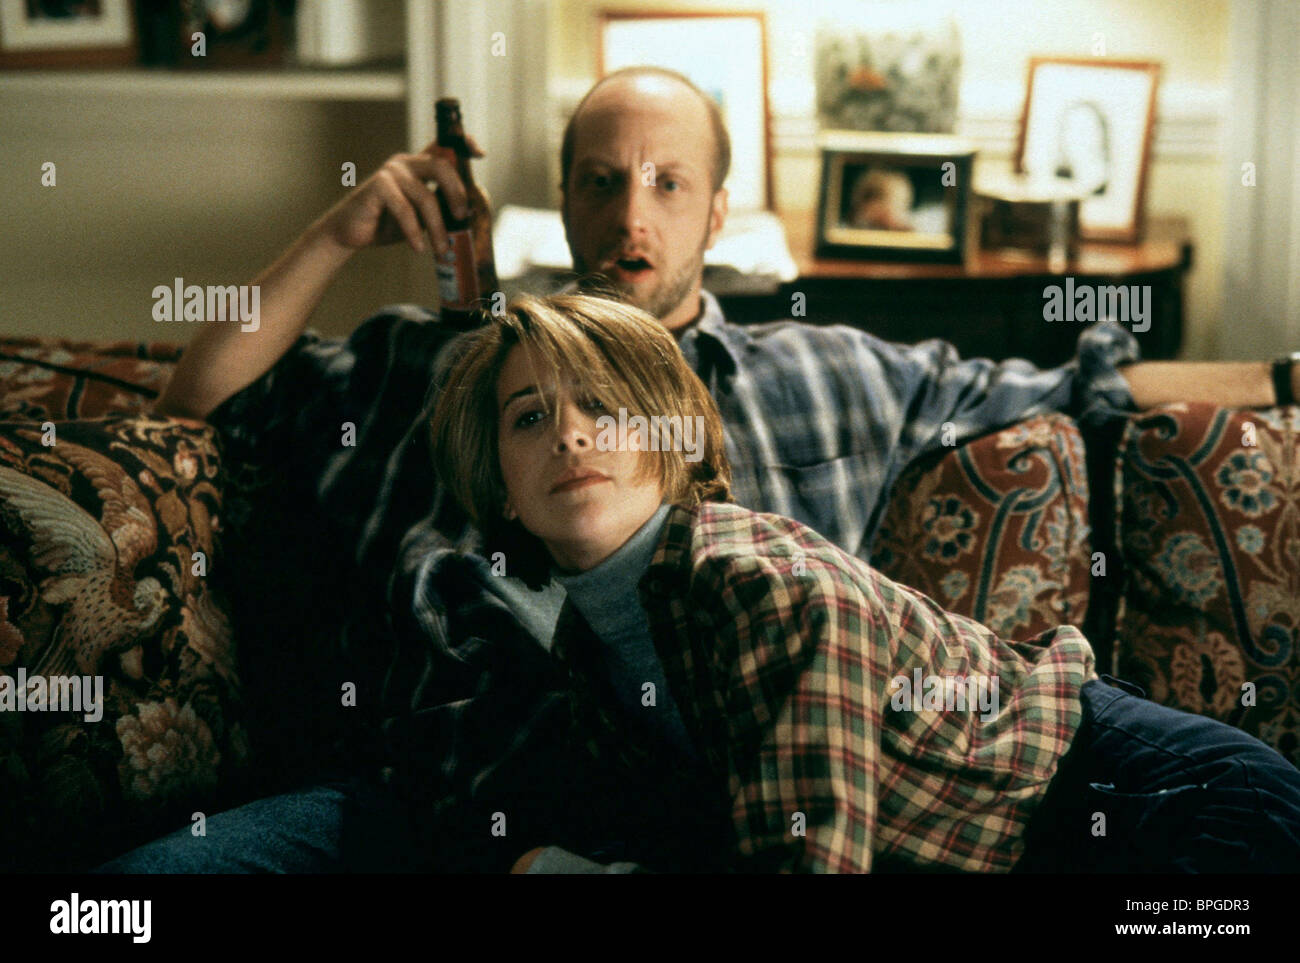 CHRIS ELLIOTT, HILLARY MATTHEWS, THERE'S SOMETHING ABOUT MARY, 1998 - Stock Image